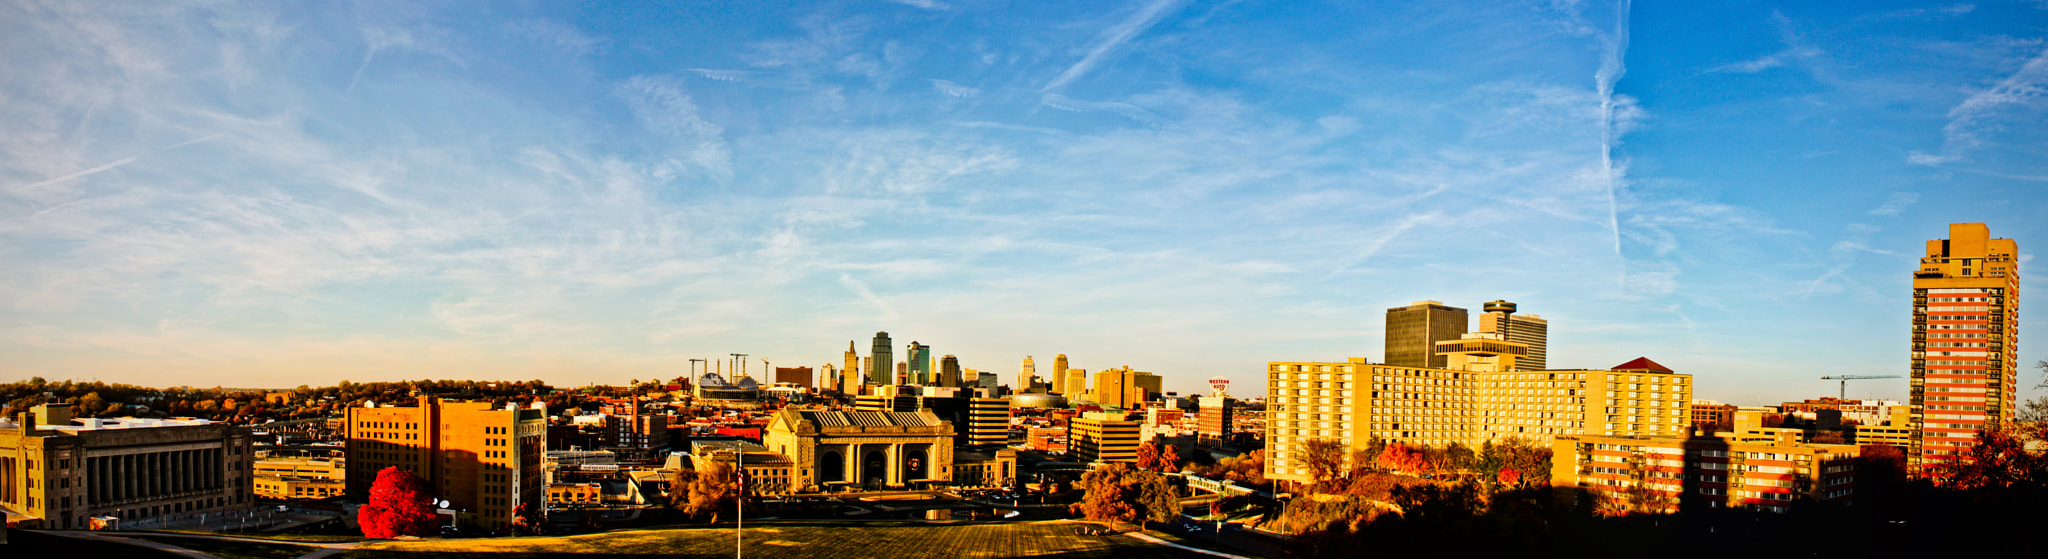 Photograph Kansas City by Timothy Lair on 500px